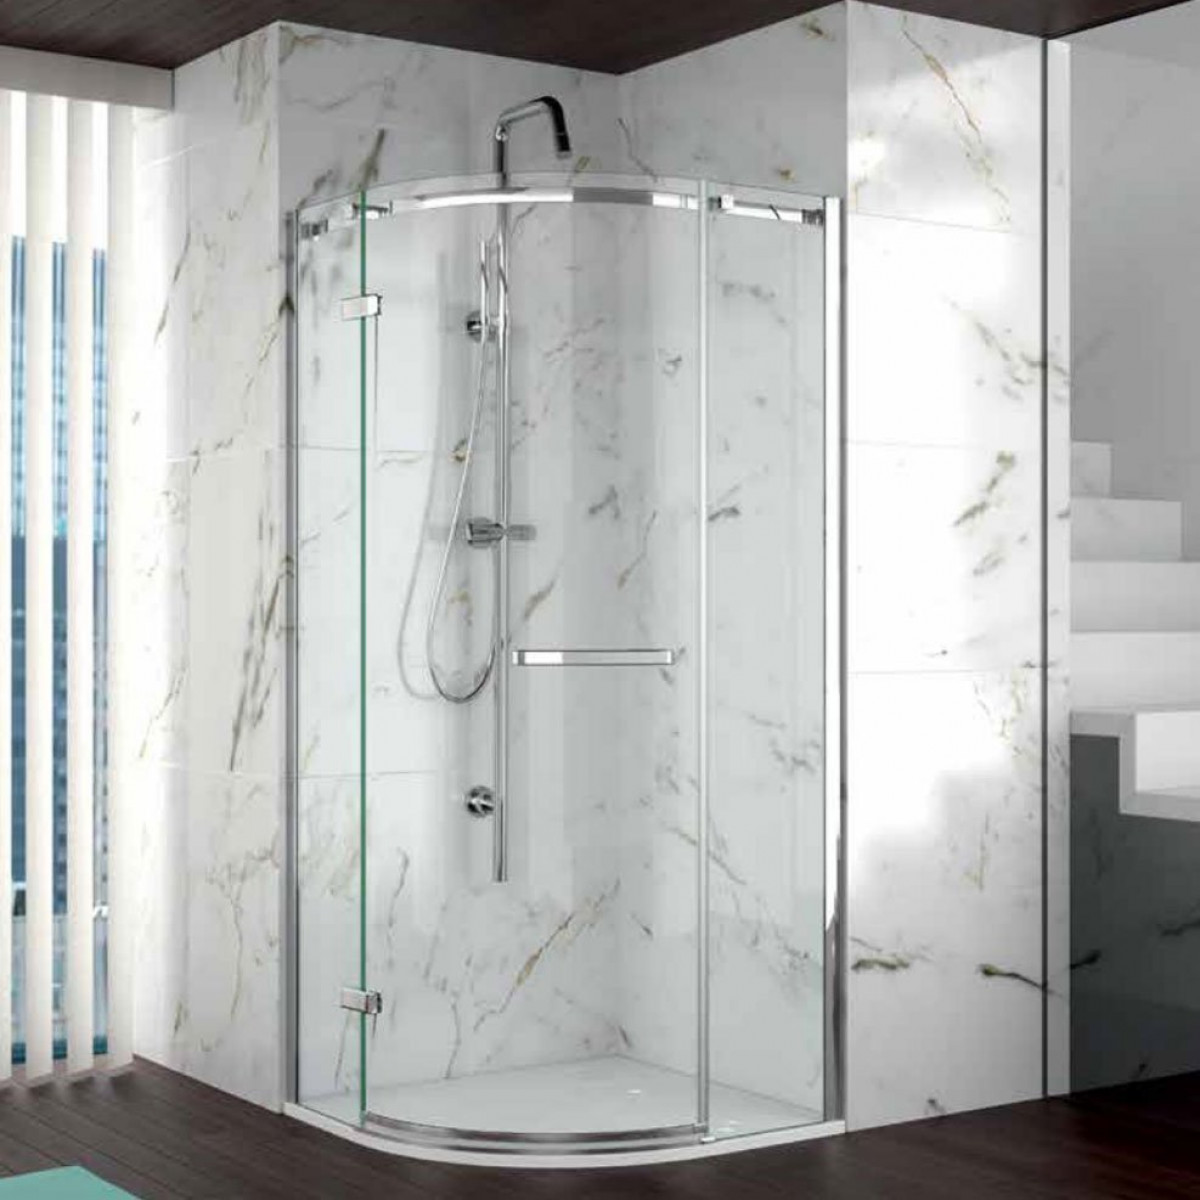 Merlyn 8 Series 1 Door 800mm Quadrant Shower Enclosure with Tray ...